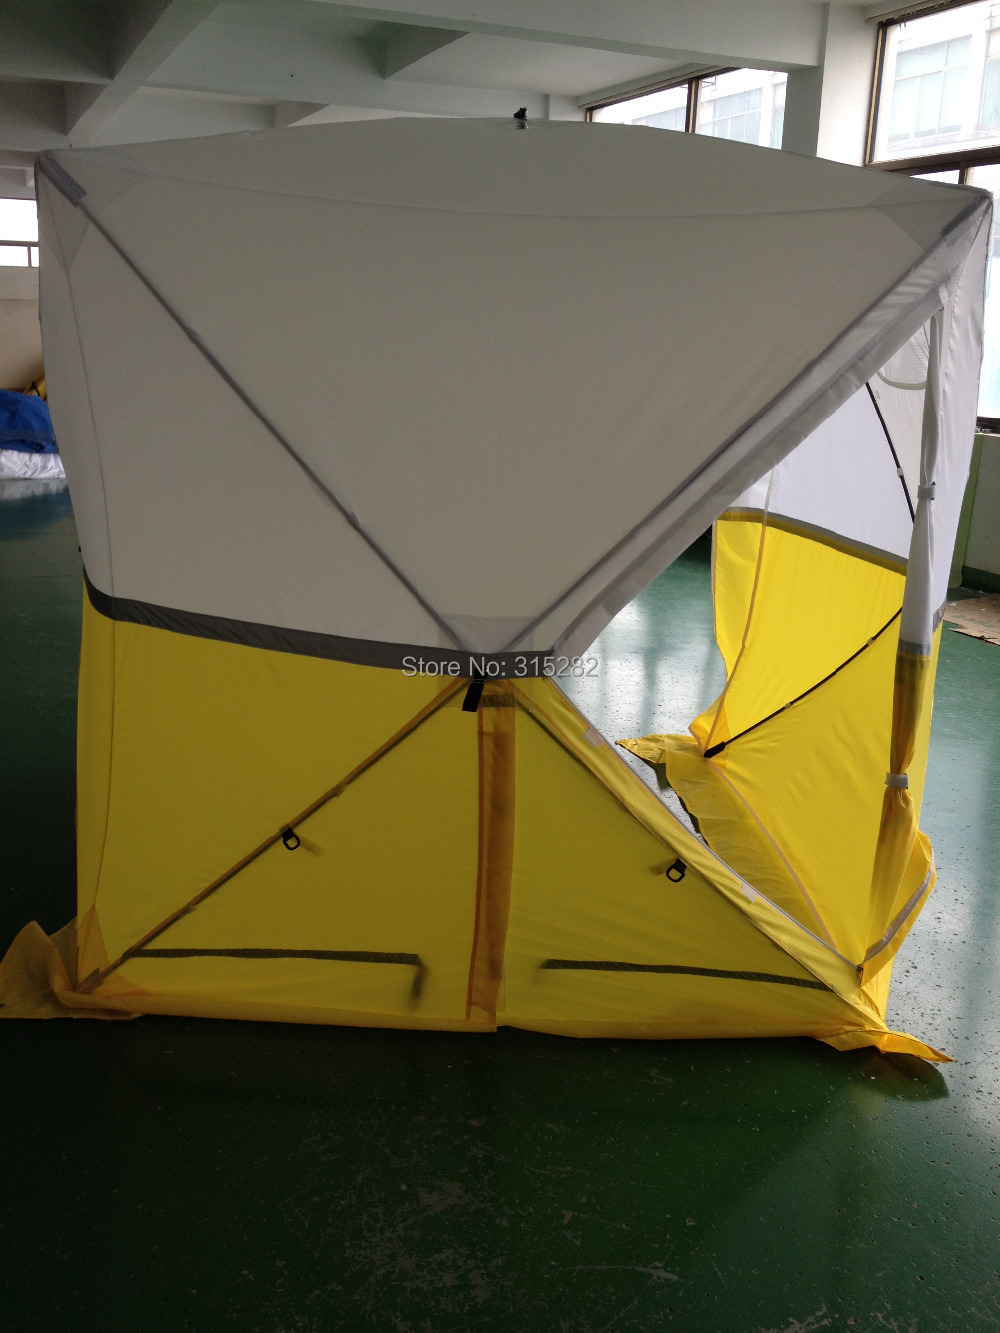 special useful outdoor construction personnel with a reflective strip remind convenient working tent-in Tents from Sports u0026 Entertainment on Aliexpress.com ... & special useful outdoor construction personnel with a reflective ...